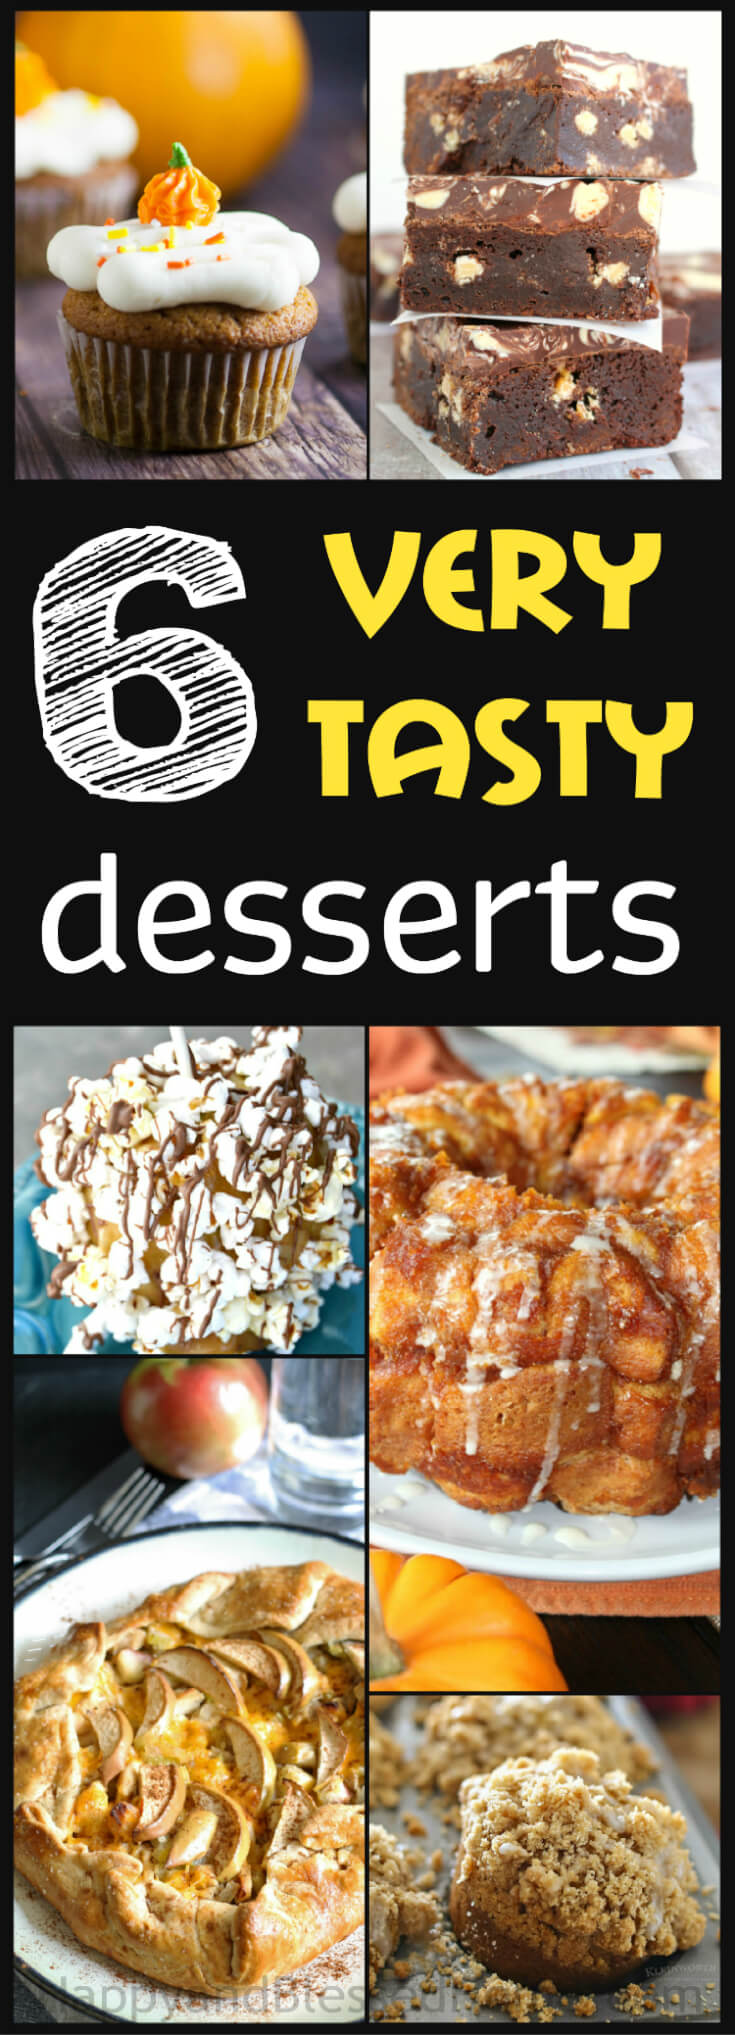 my-list-of-6-very-tasty-desserts-with-chocolate-pumpkin-and-apple-flavors-perfect-for-after-supper